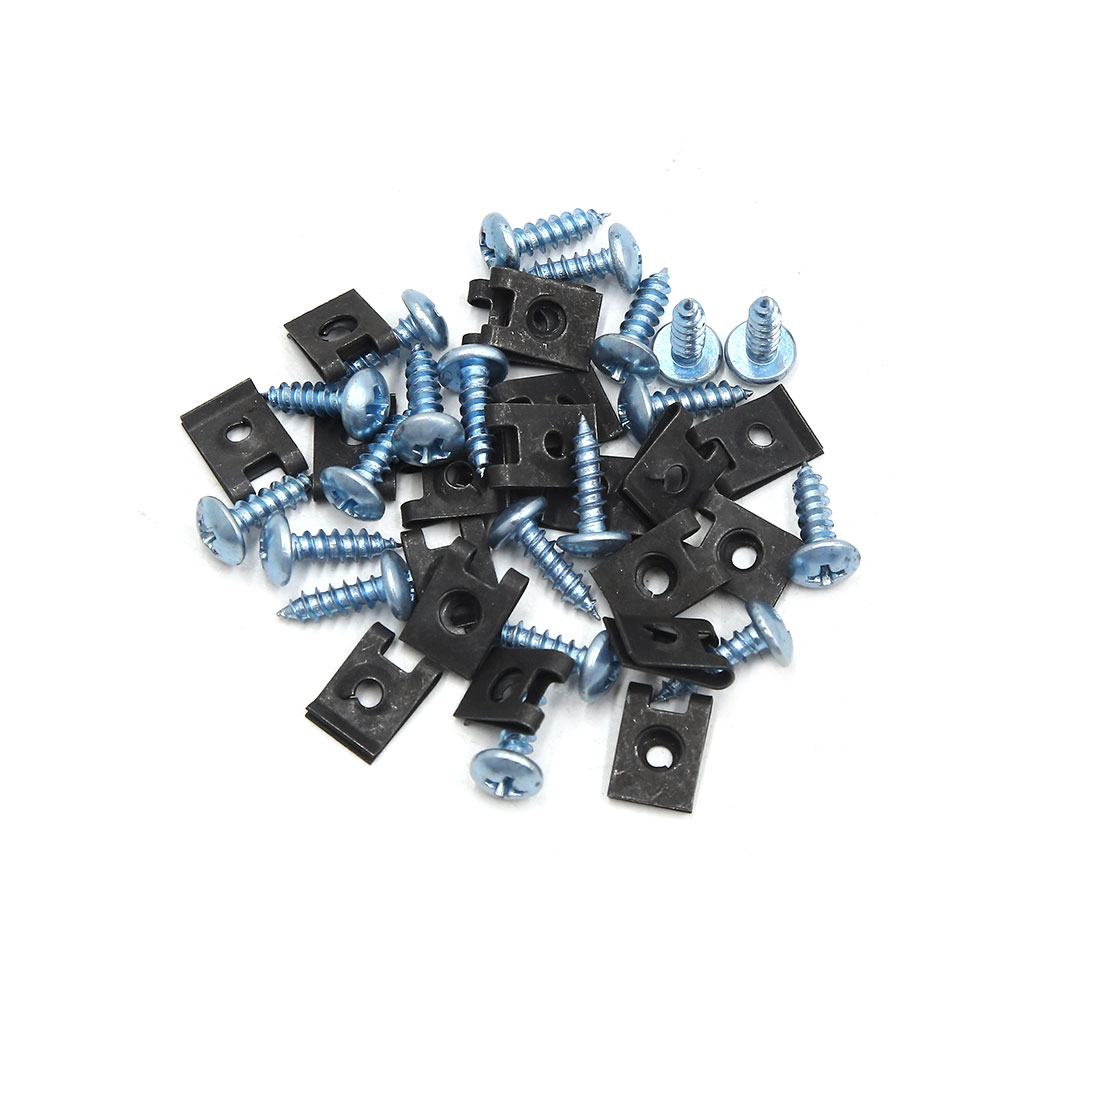 20PCS 4mm Thread Dia License Plate Fairing Clips Kit for Motorcycle Car w Screws